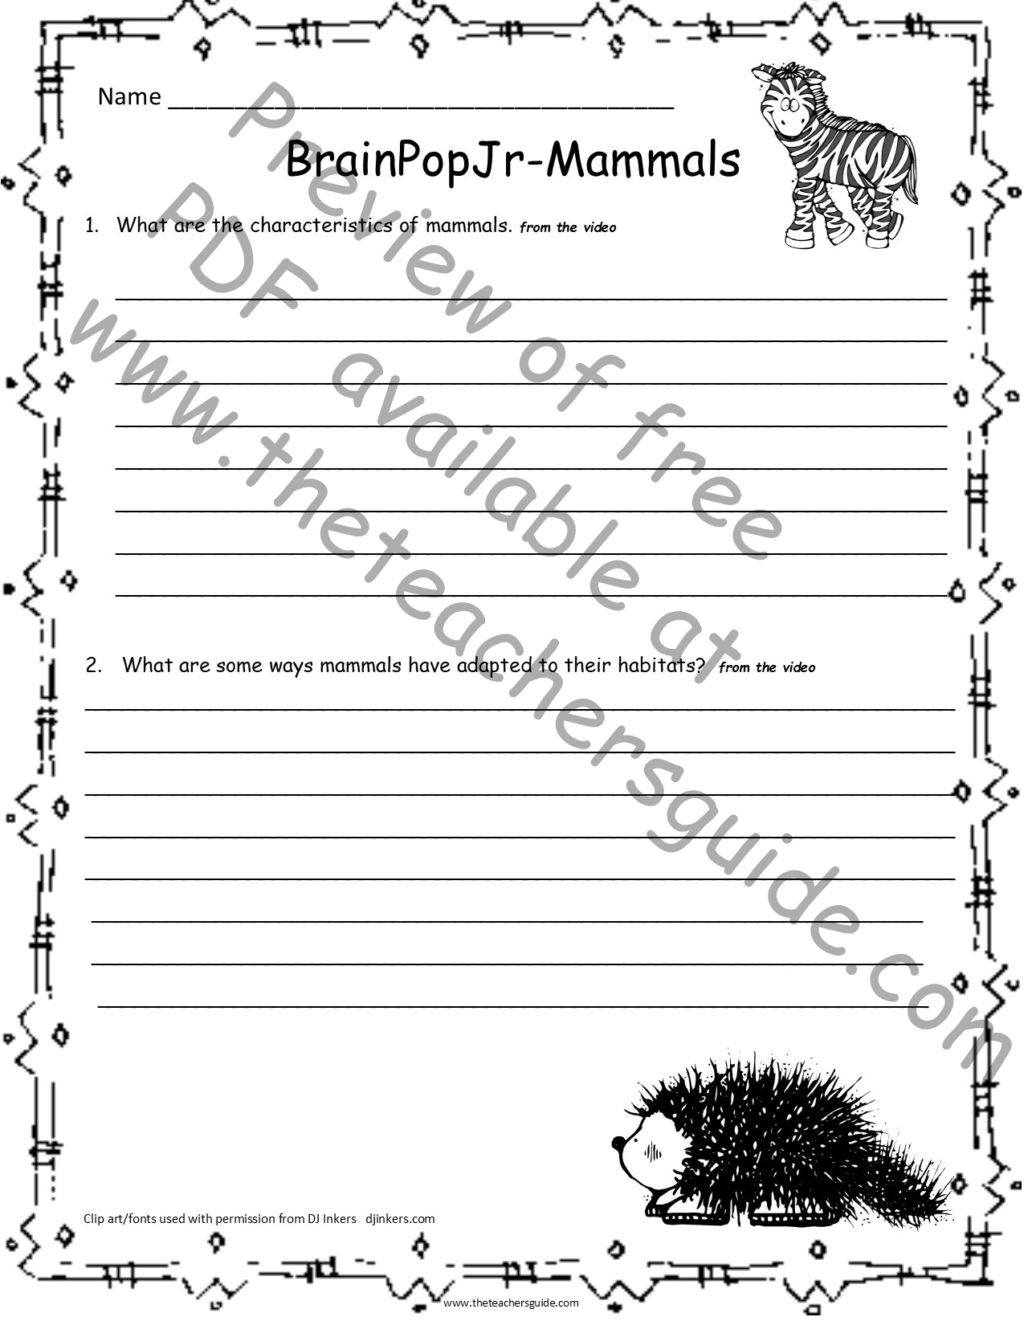 Mammals Worksheets for 2nd Grade Worksheet Scienceorksheets for 2nd Grade the Teachers